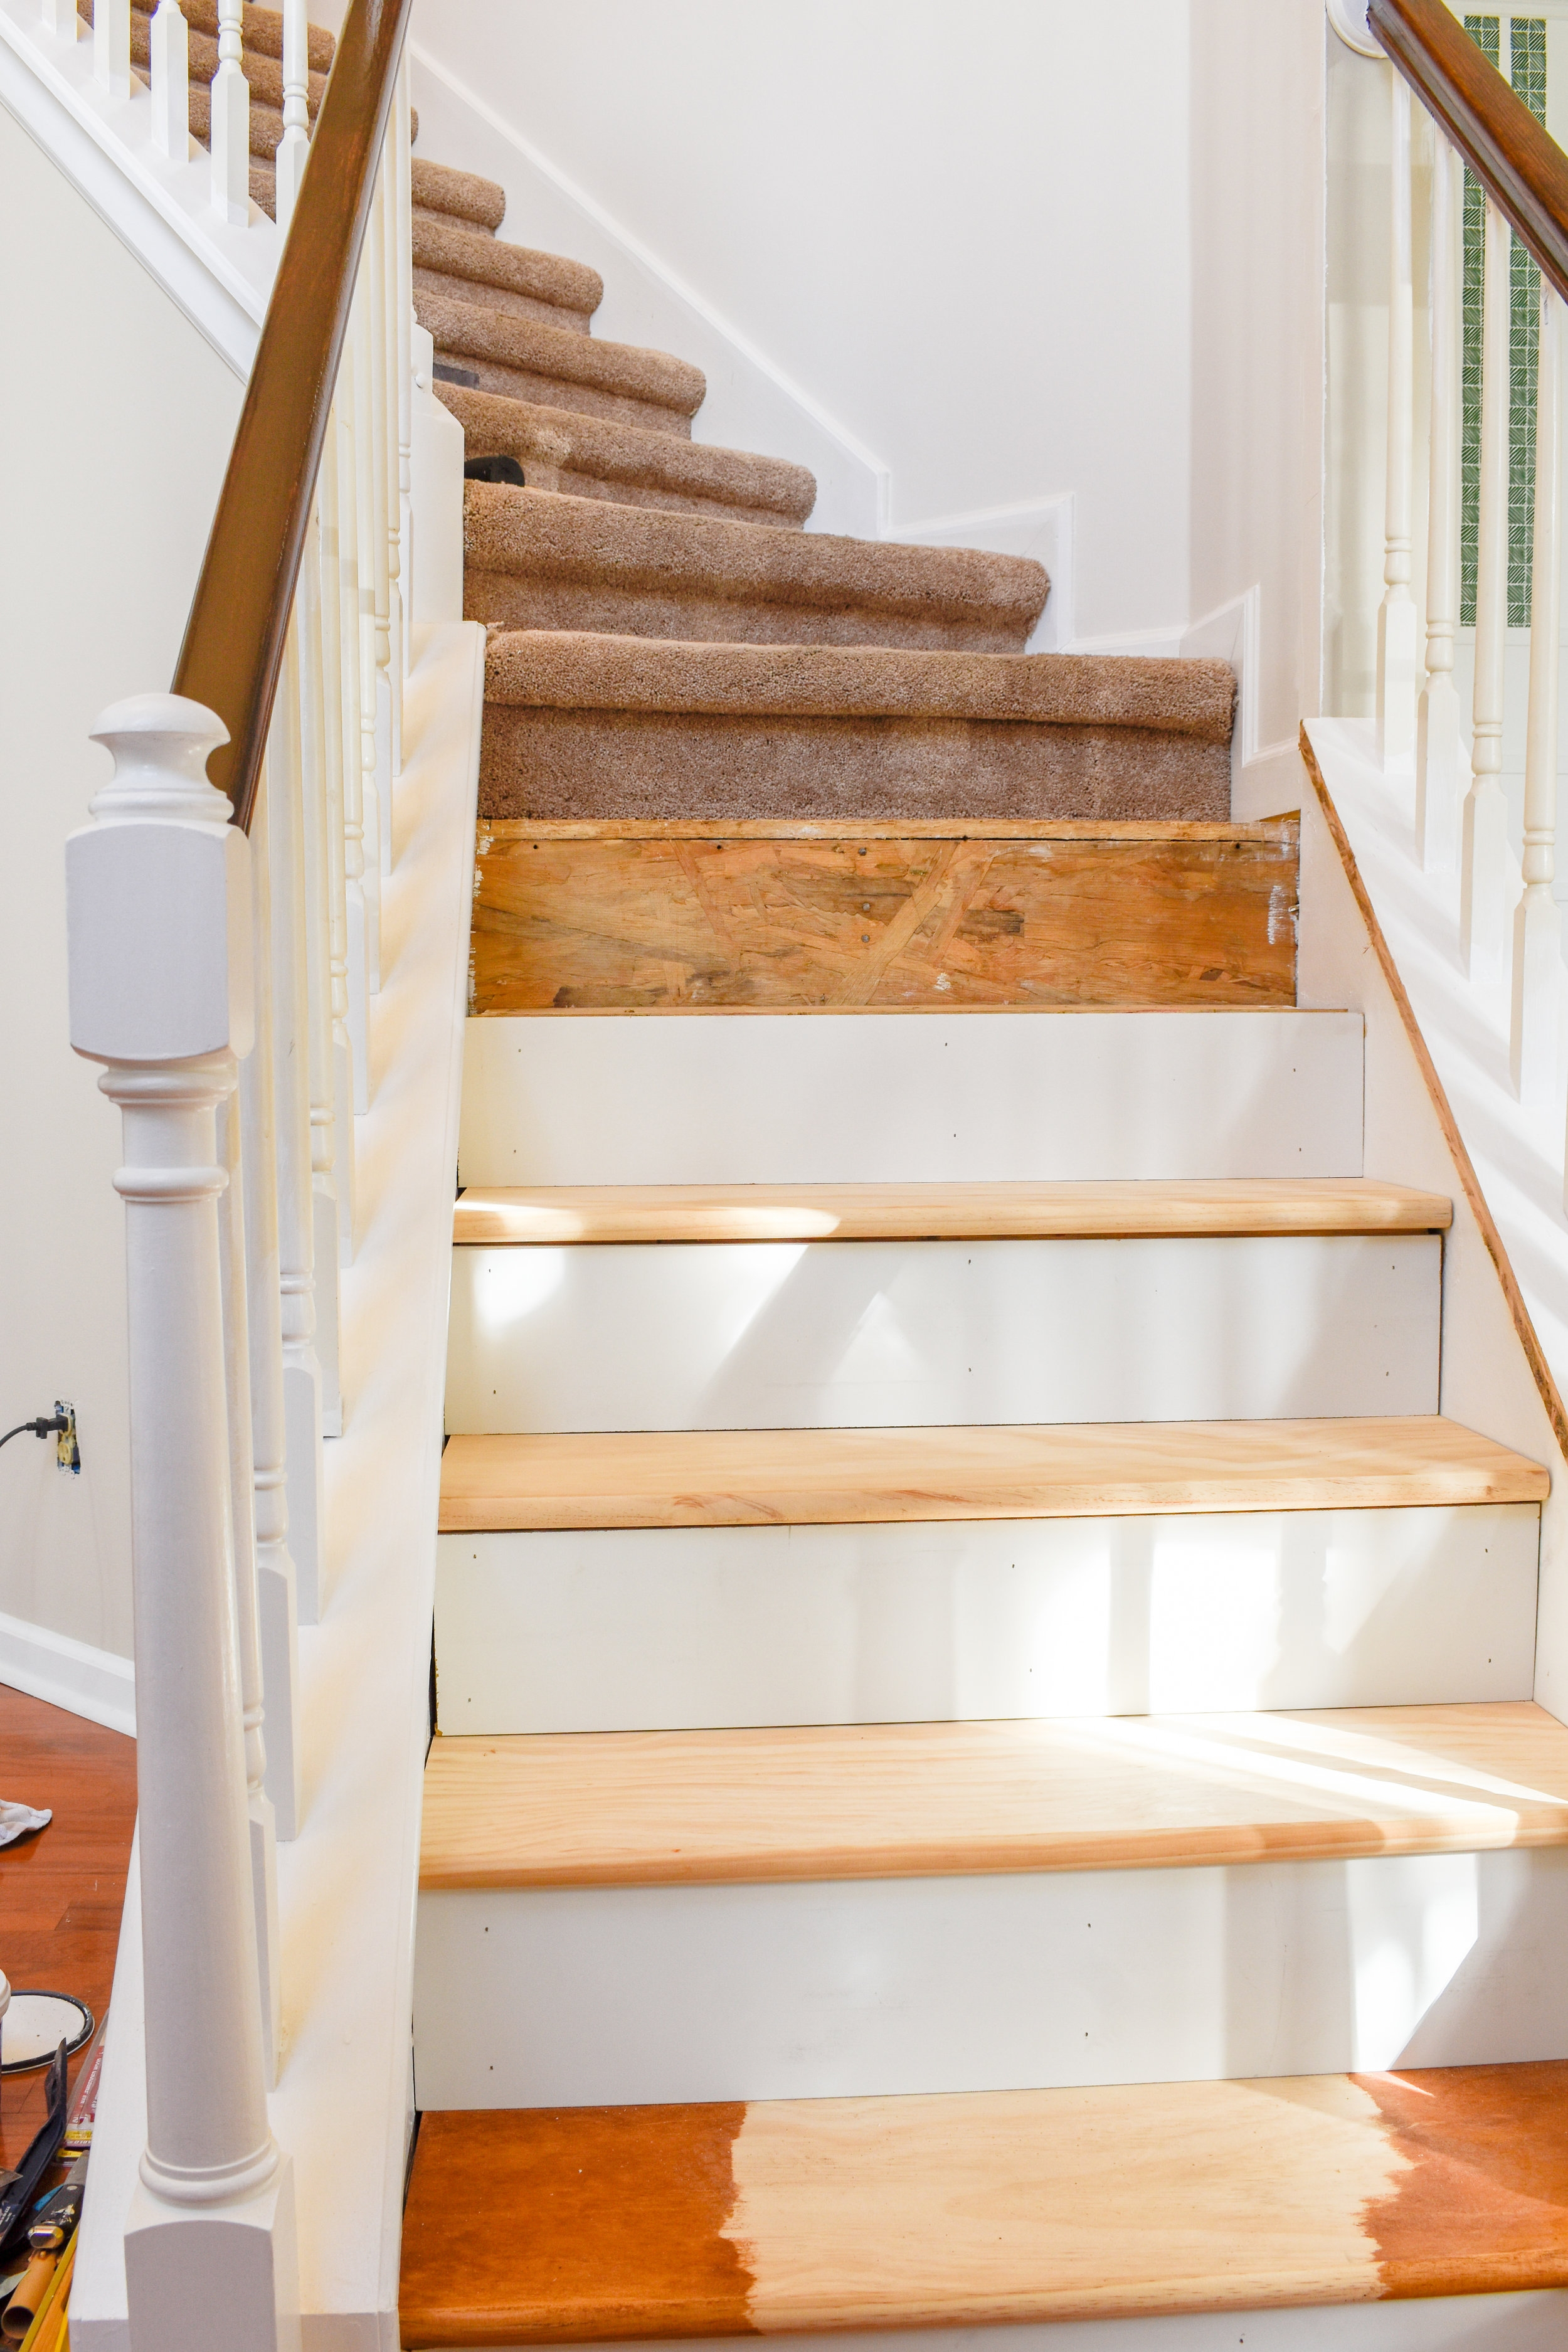 Diy Hardwood Staircase Makeover Replacing Carpet With Wood Treads | Installing Hardwood Stair Treads | Stair Railing | Wood Flooring | Staircase Makeover | Wooden Stairs | Carpeted Stairs